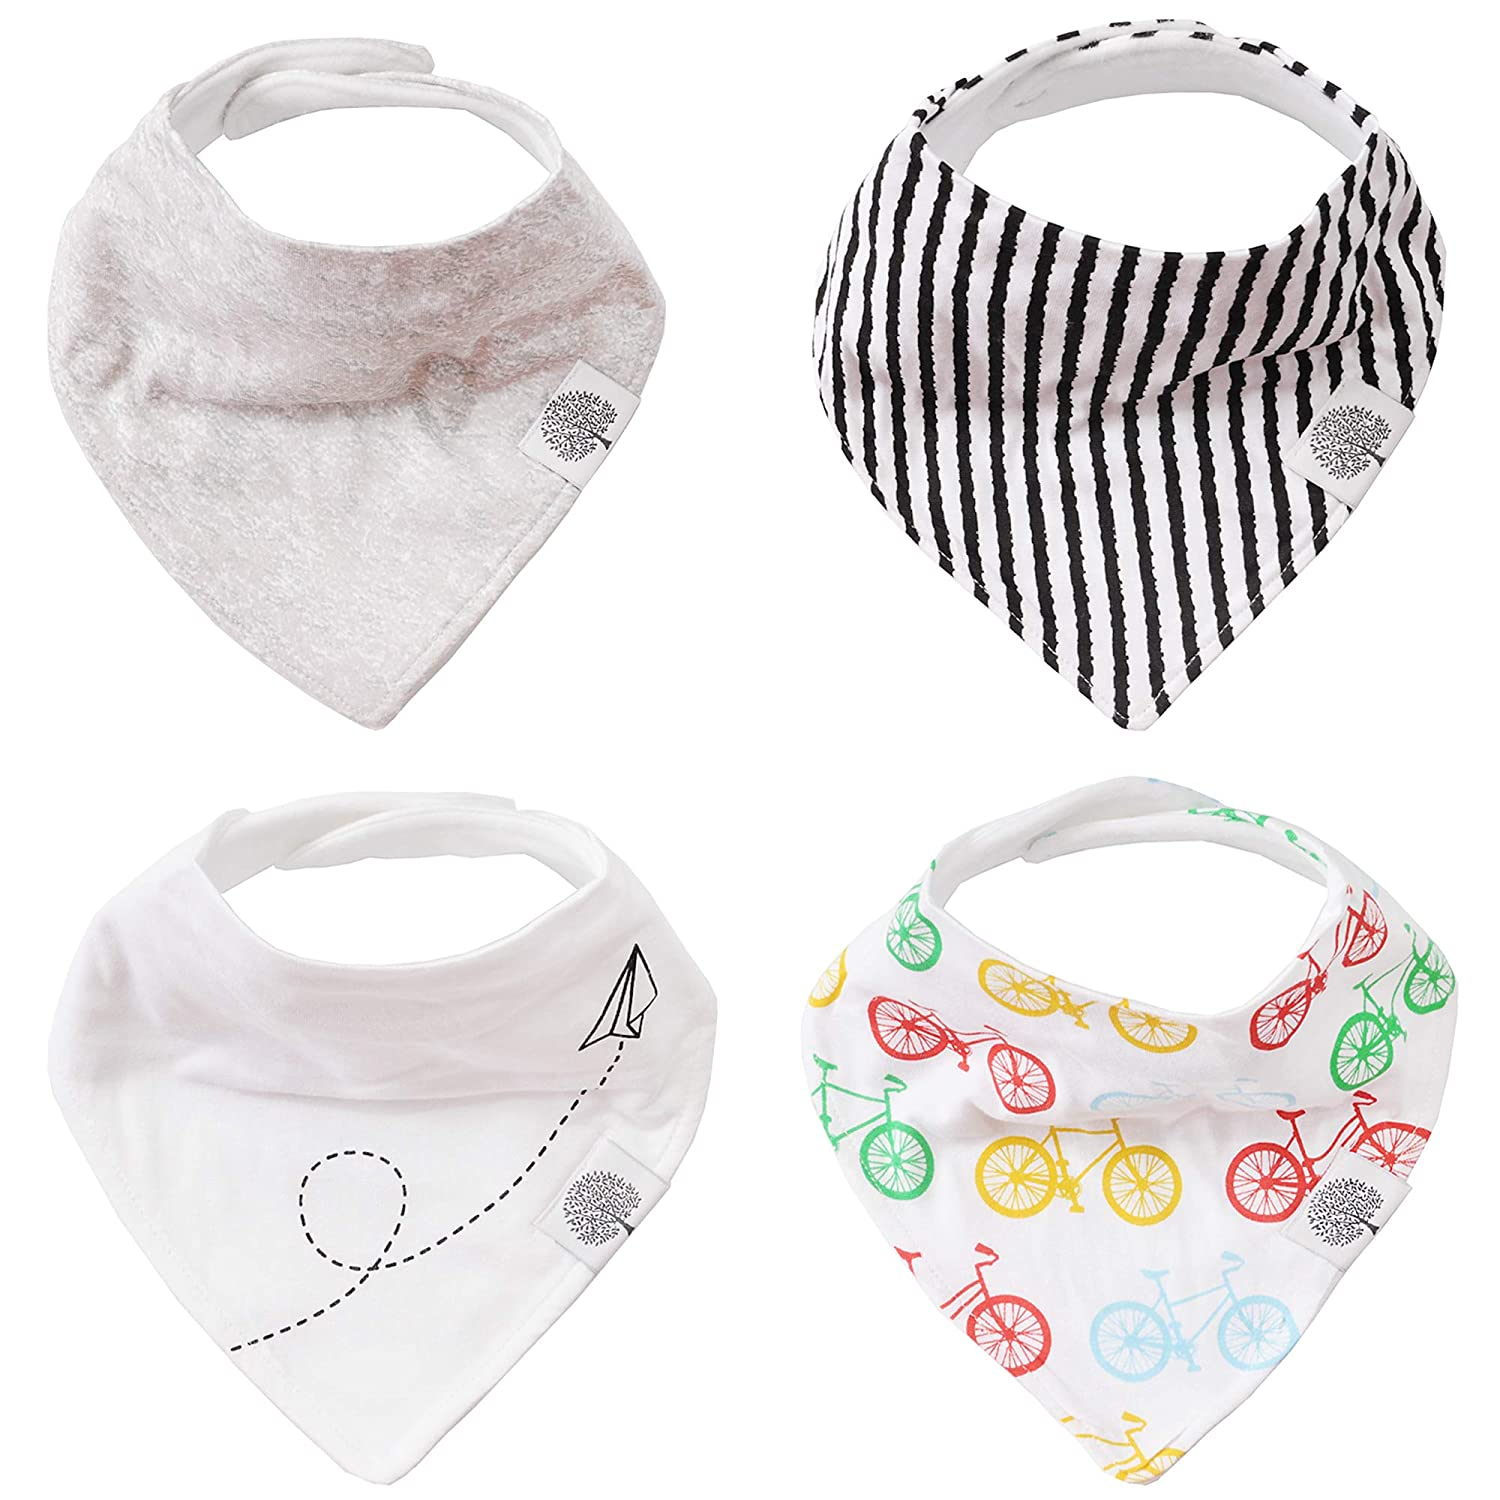 Parker Baby Bandana Drool Bibs - 4 Pack Gray Baby Bibs for Boys, Girls, Unisex -Shadow Set Parker Baby Co. TGB113